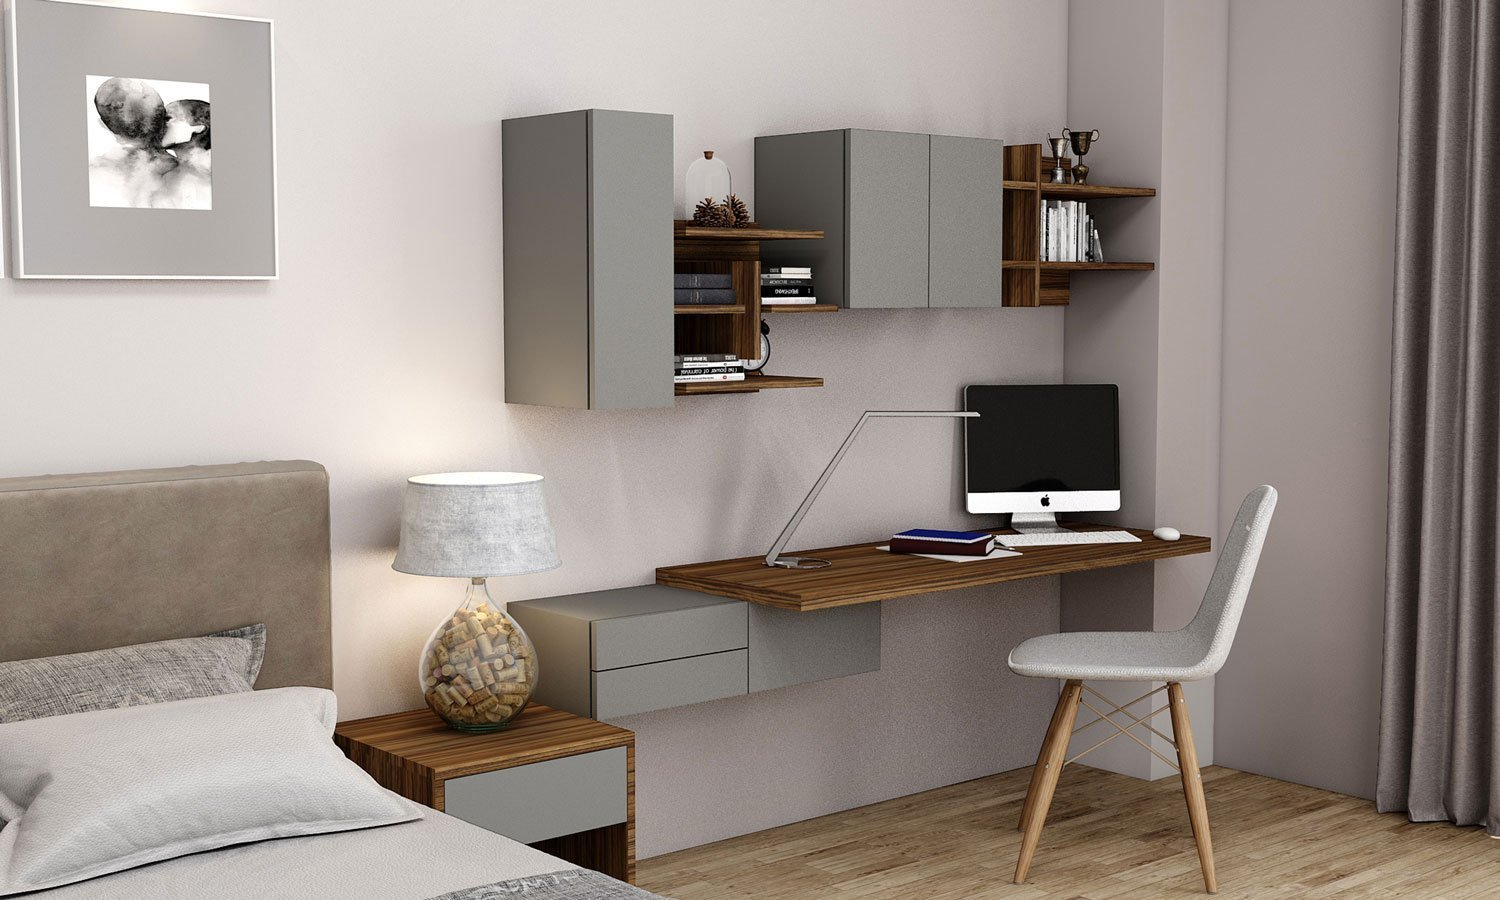 Desk and Home Study Unit Storage in Dust Grey and Dark Iberian Olive